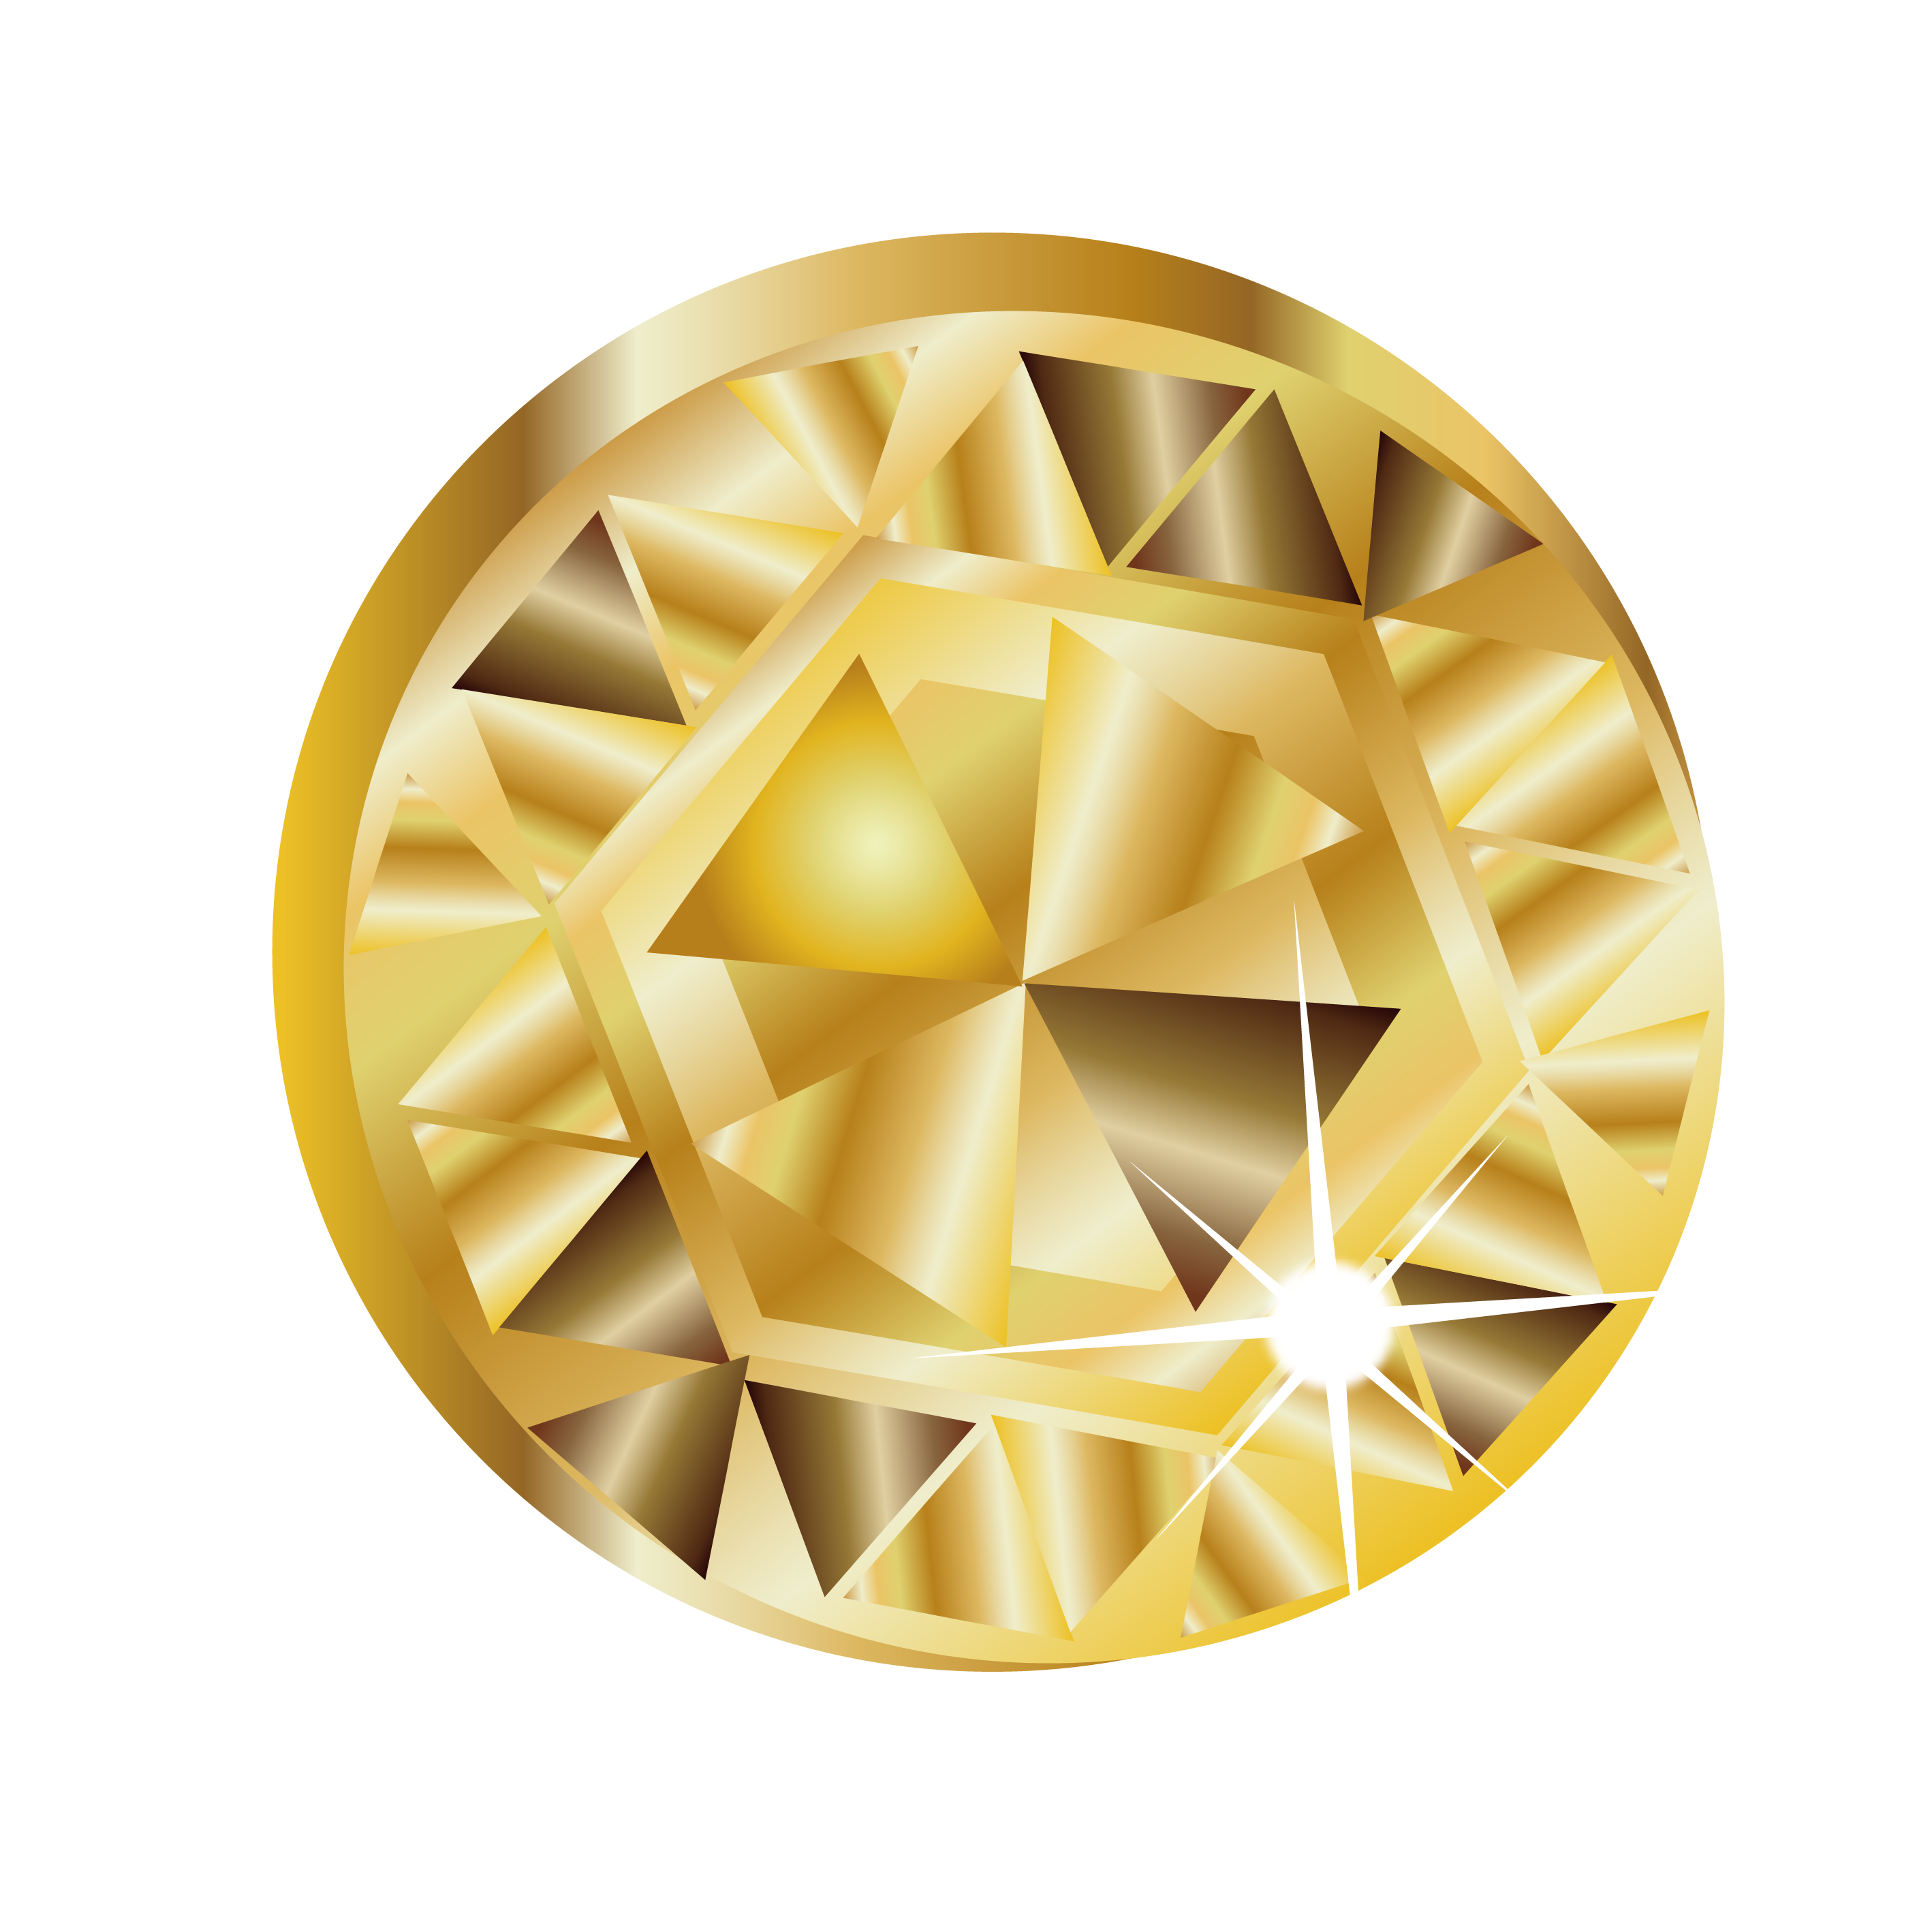 Gold diamond png. Yellow cuisine transprent free